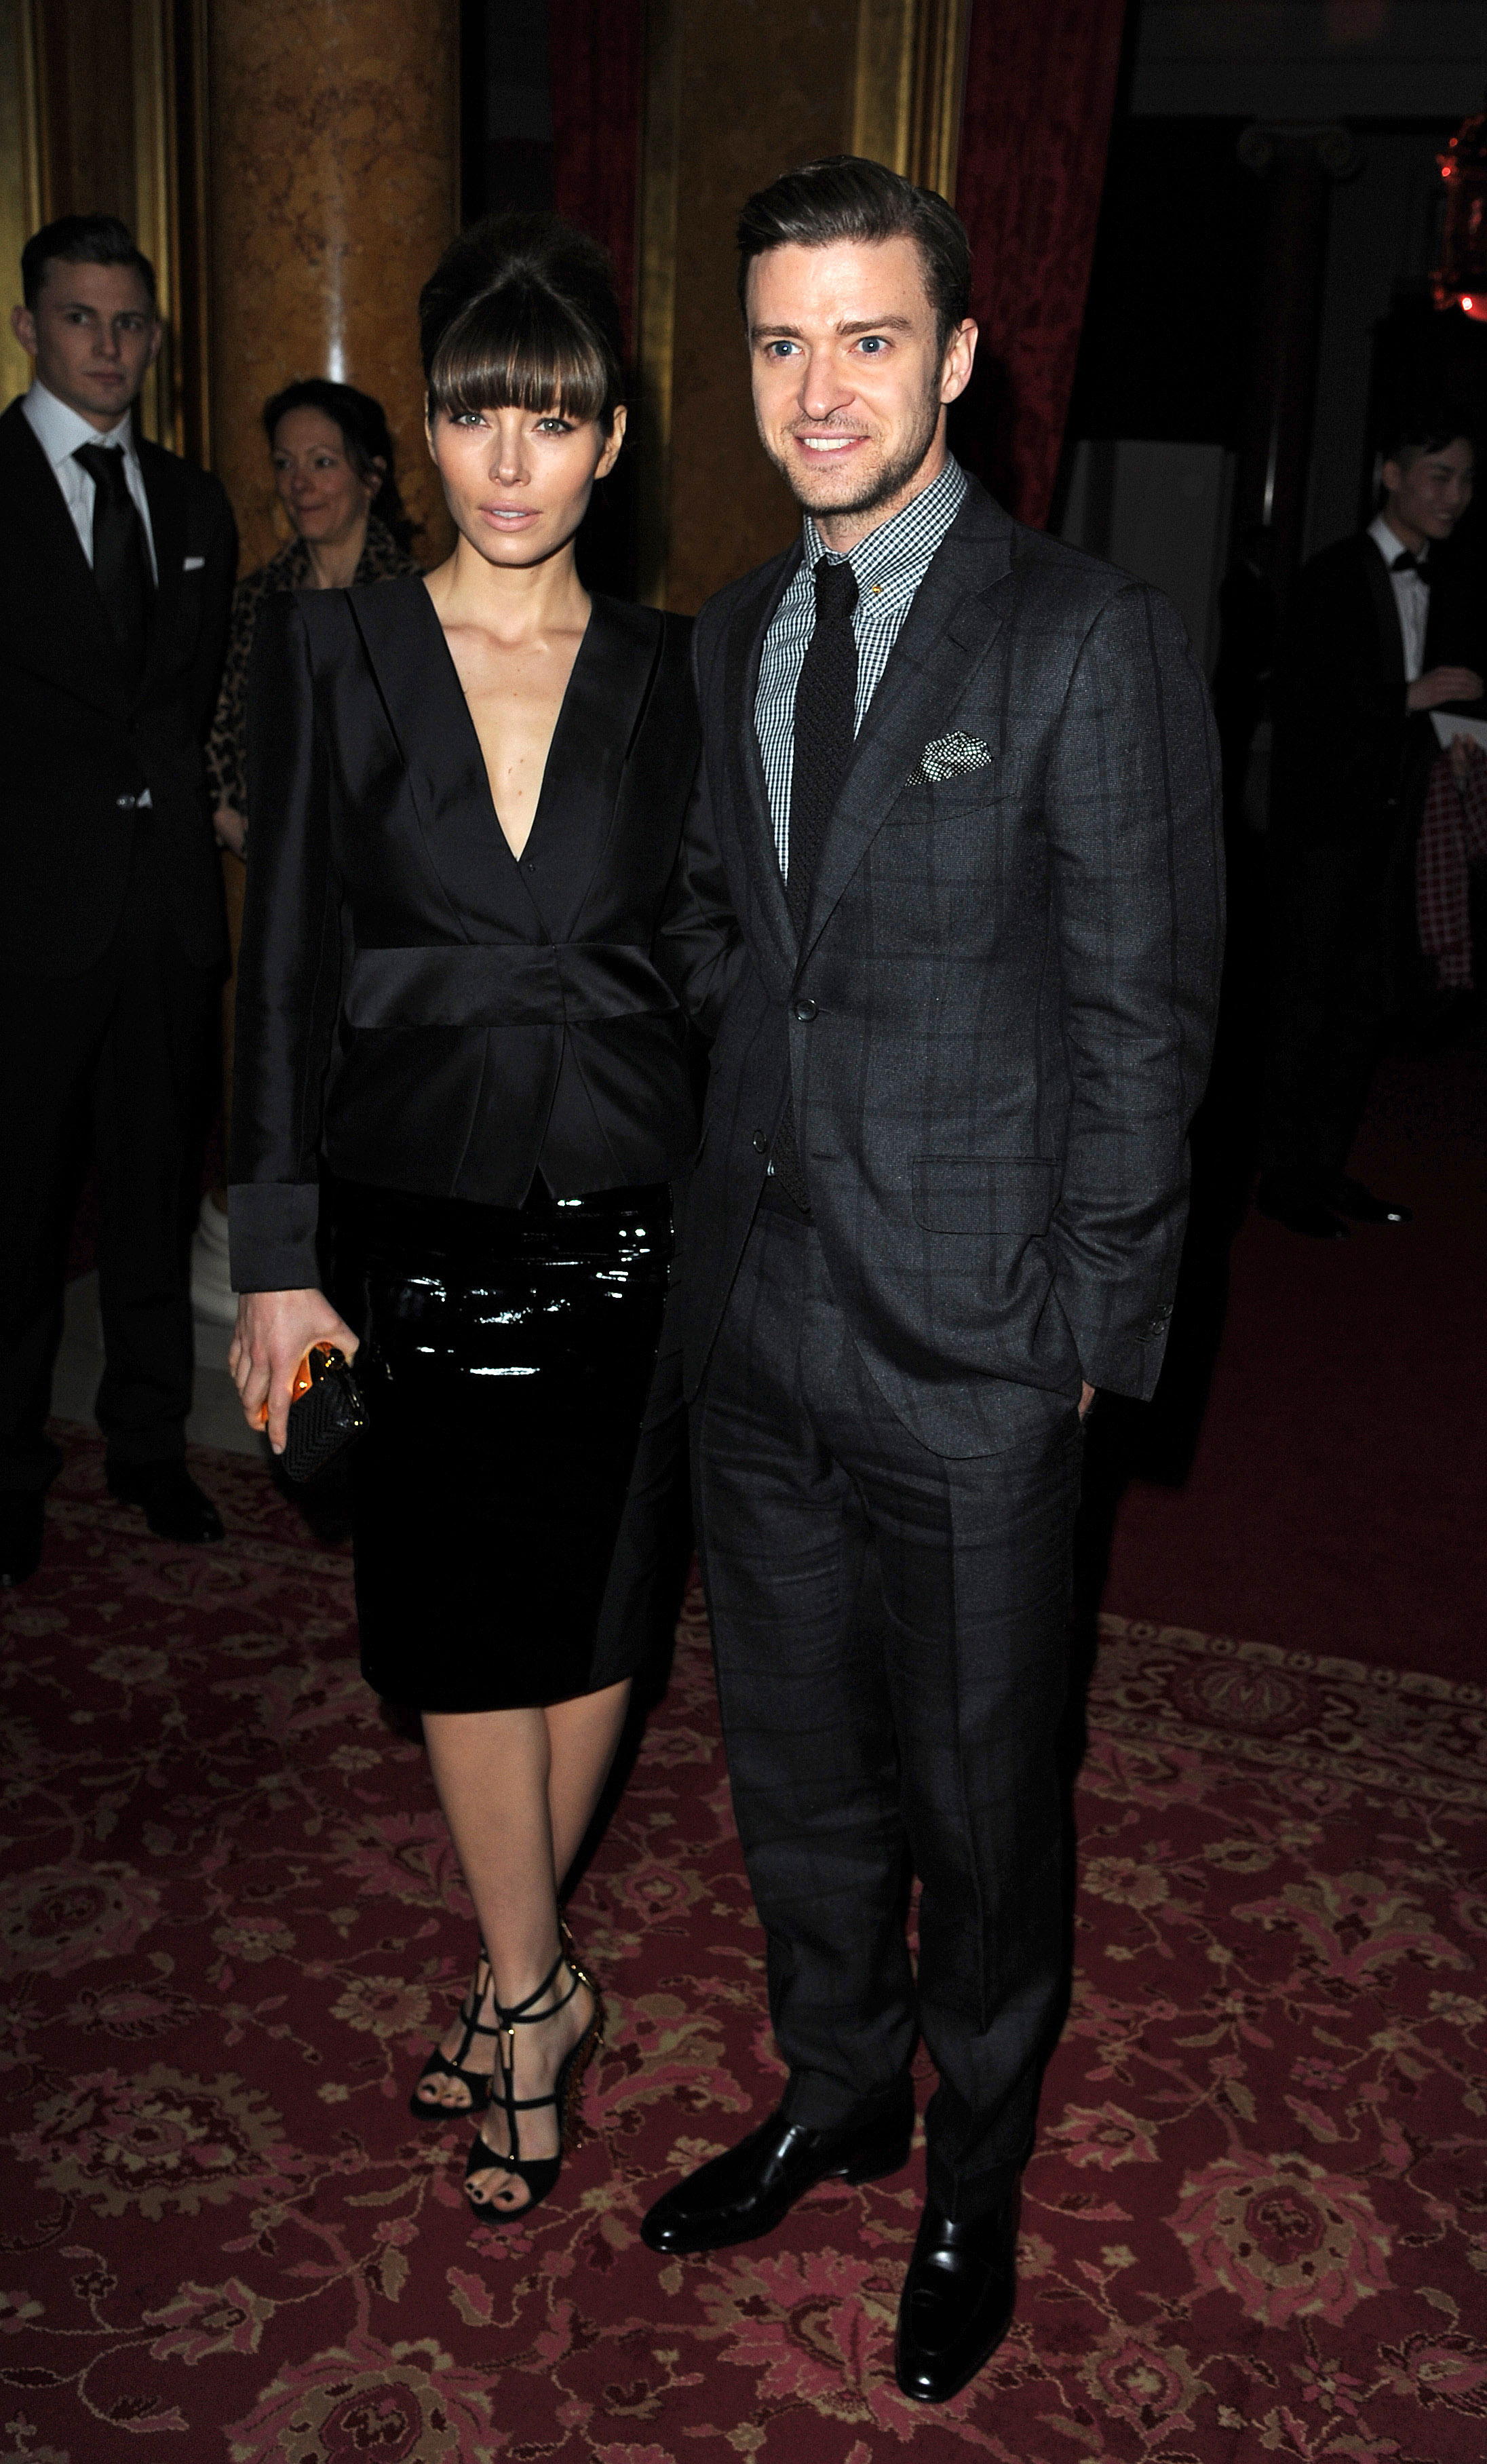 Justin Timberlake and Jessica Biel posed together at the Tom Ford runway show in London.